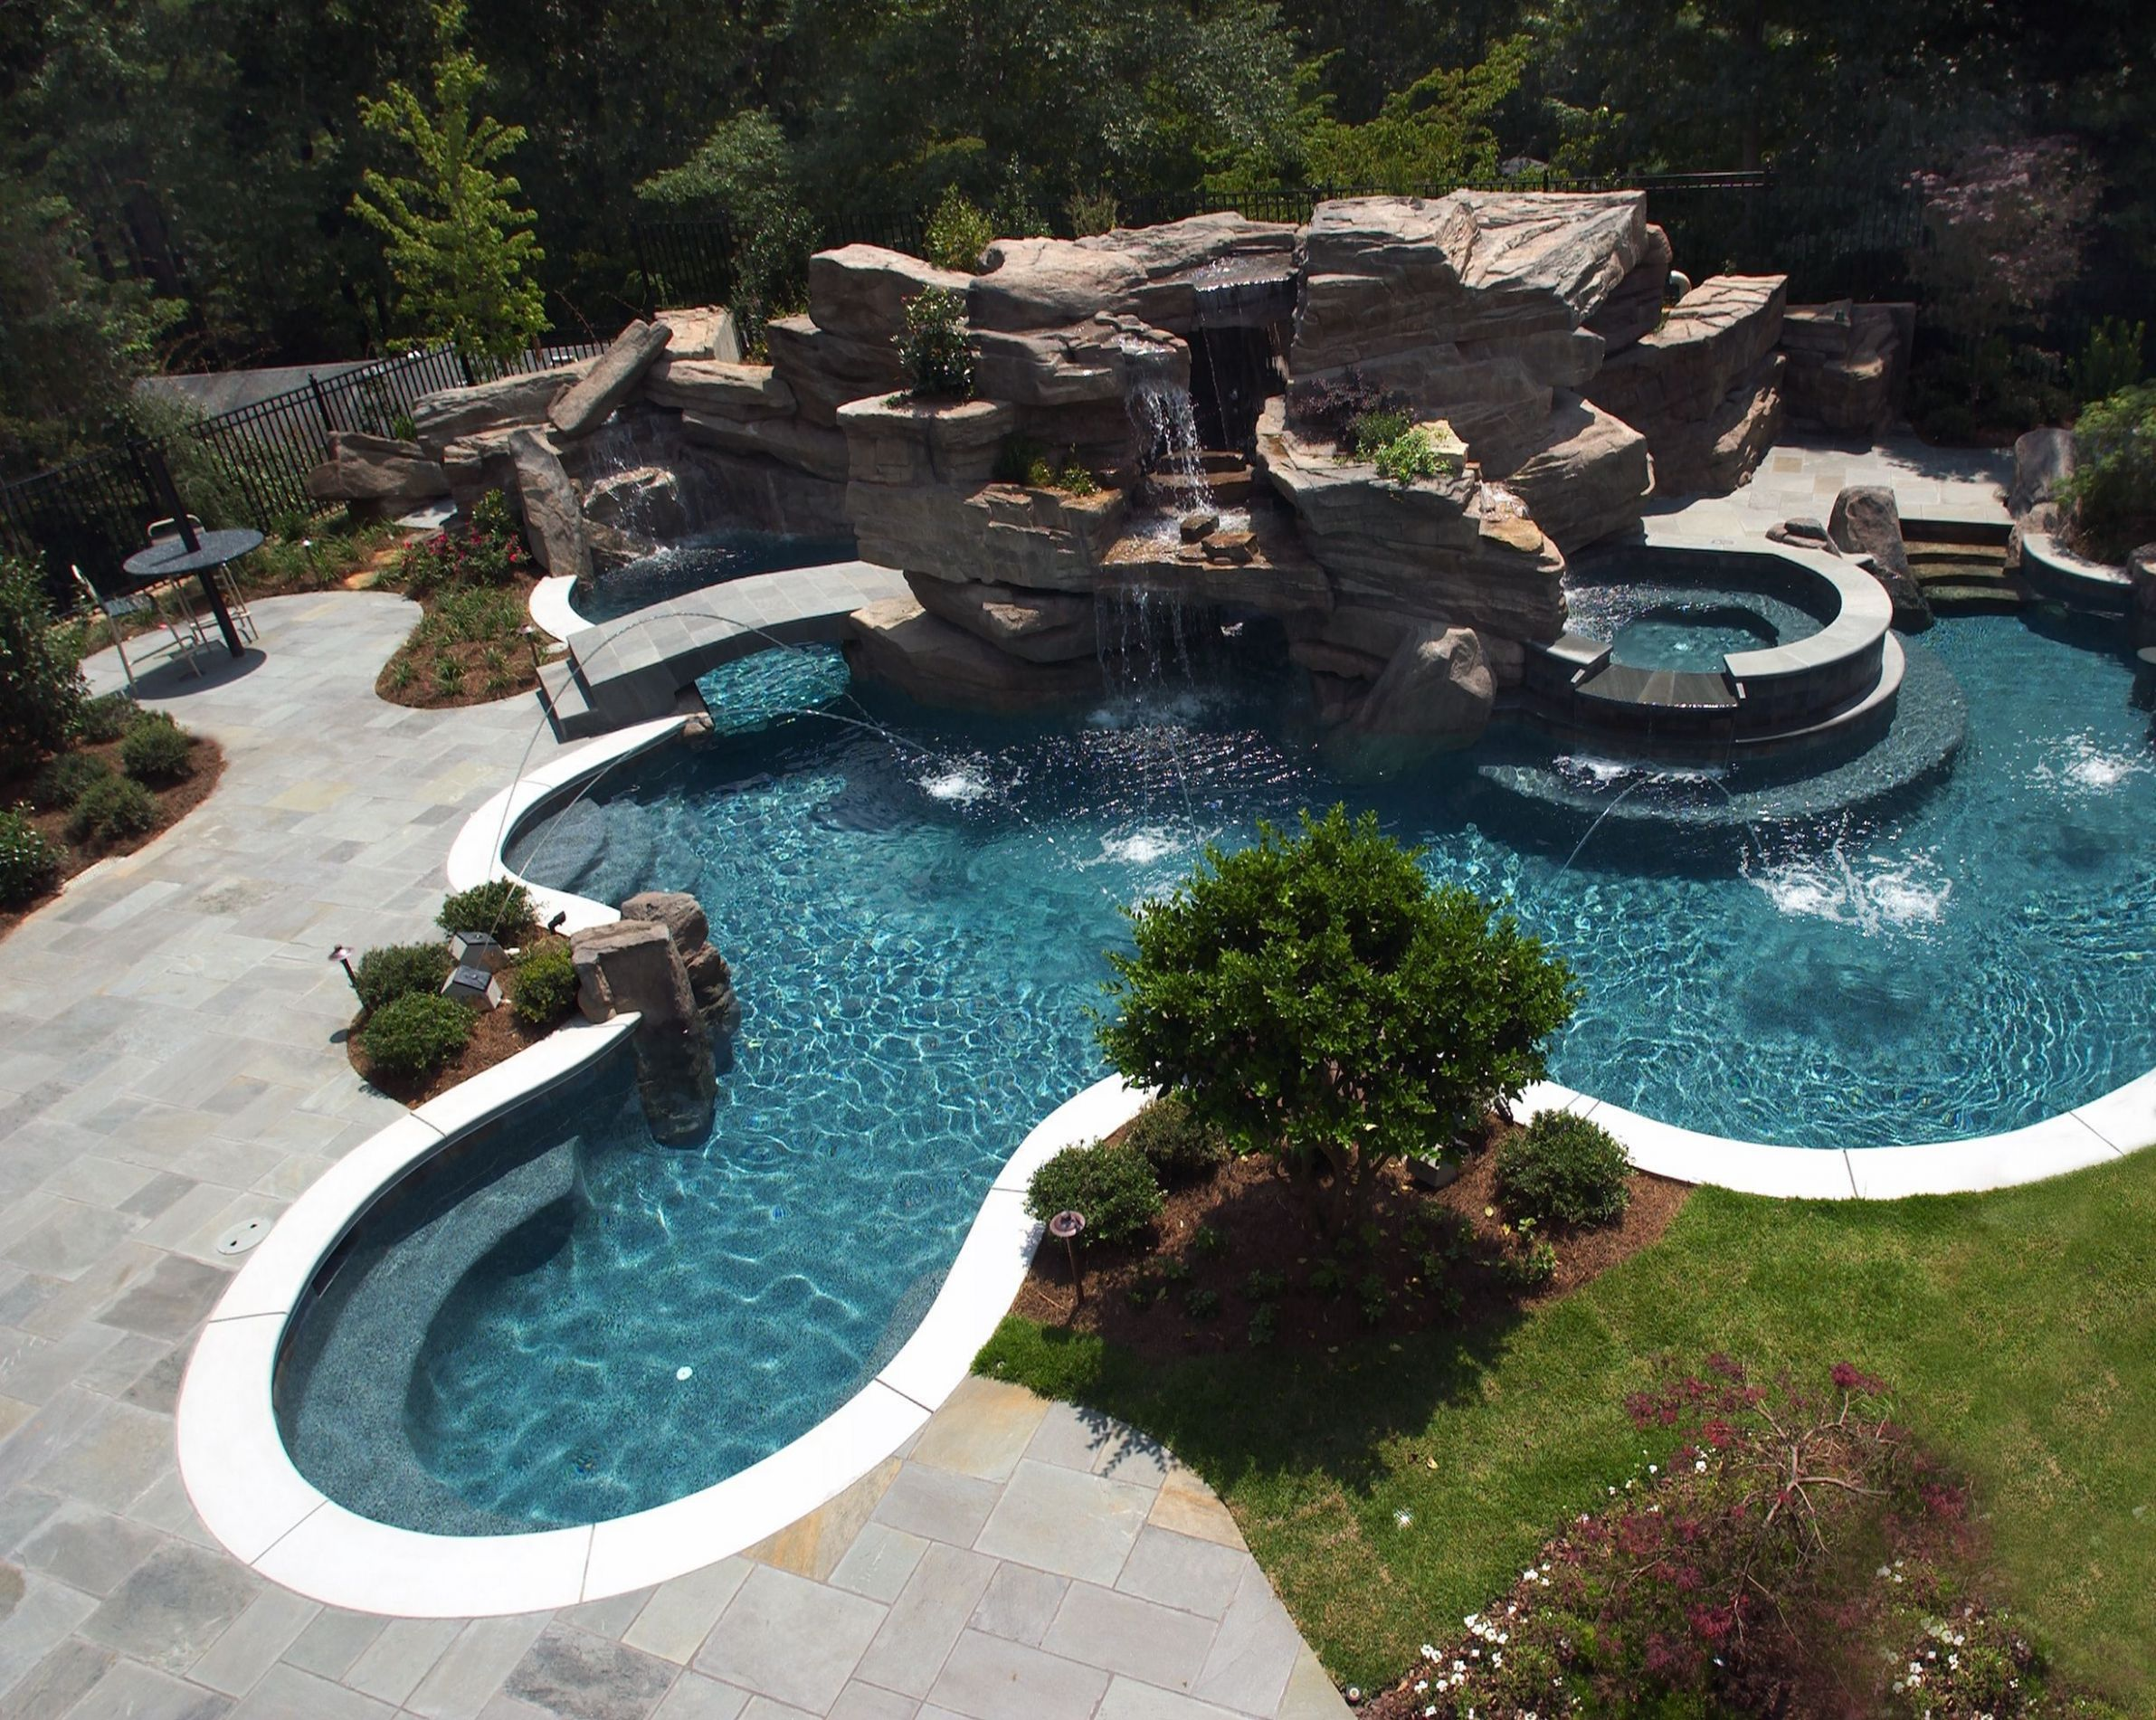 9+ Incredible Swimming Pool Design Ideas With Waterfall For Your ...